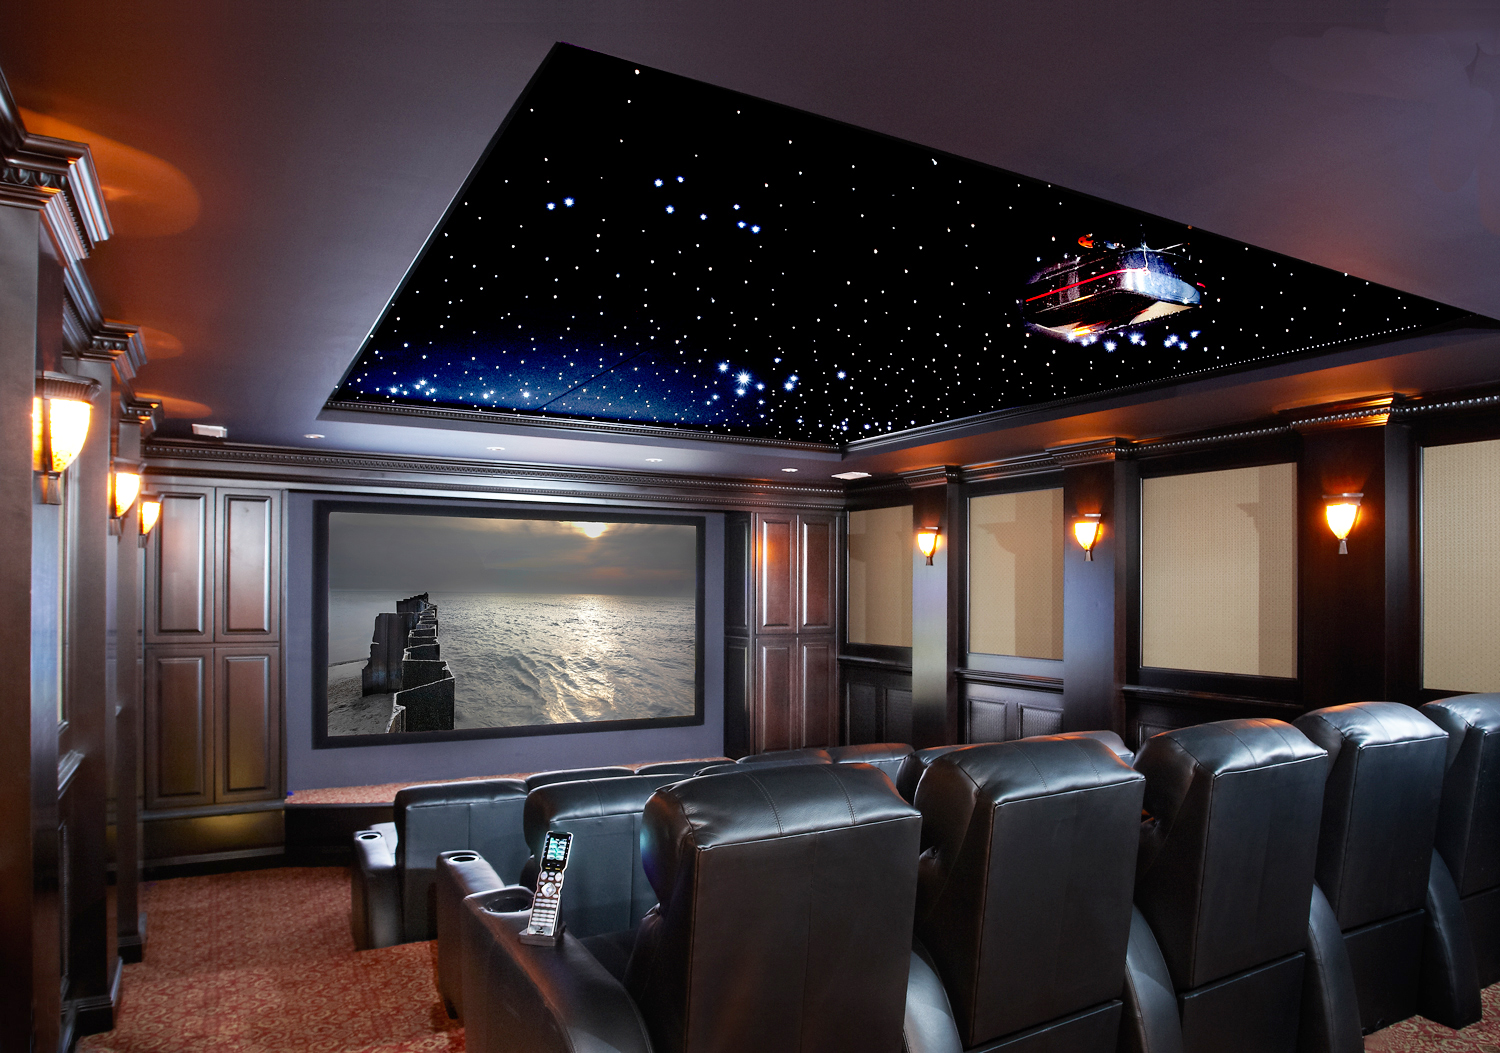 The Home Theatre Experience